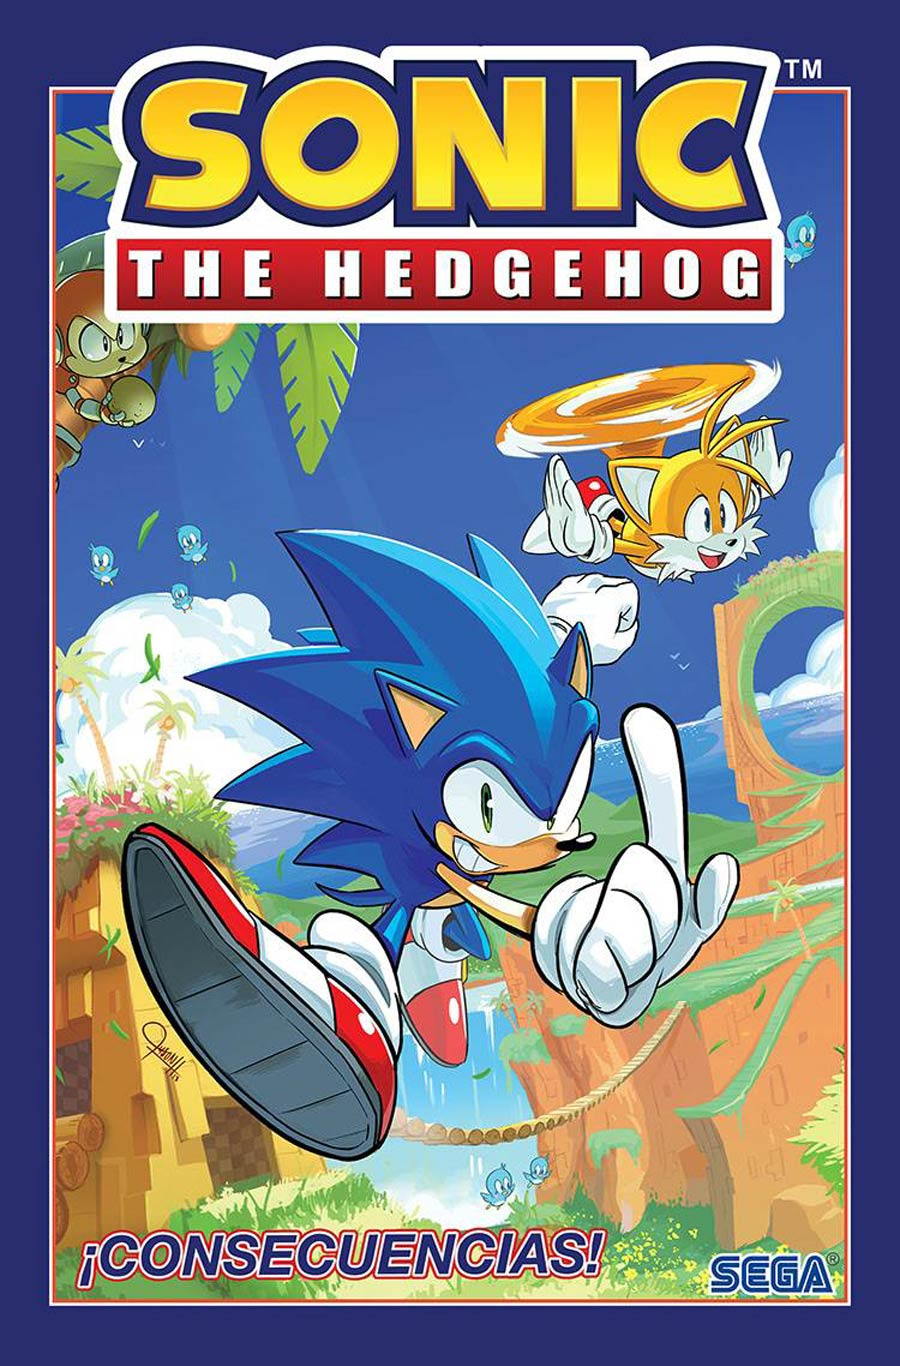 Sonic The Hedgehog (IDW) Vol 1 Consecuencias (Sonic The Hedgehog (IDW) Vol 1 Fallout Spanish Edition) TP